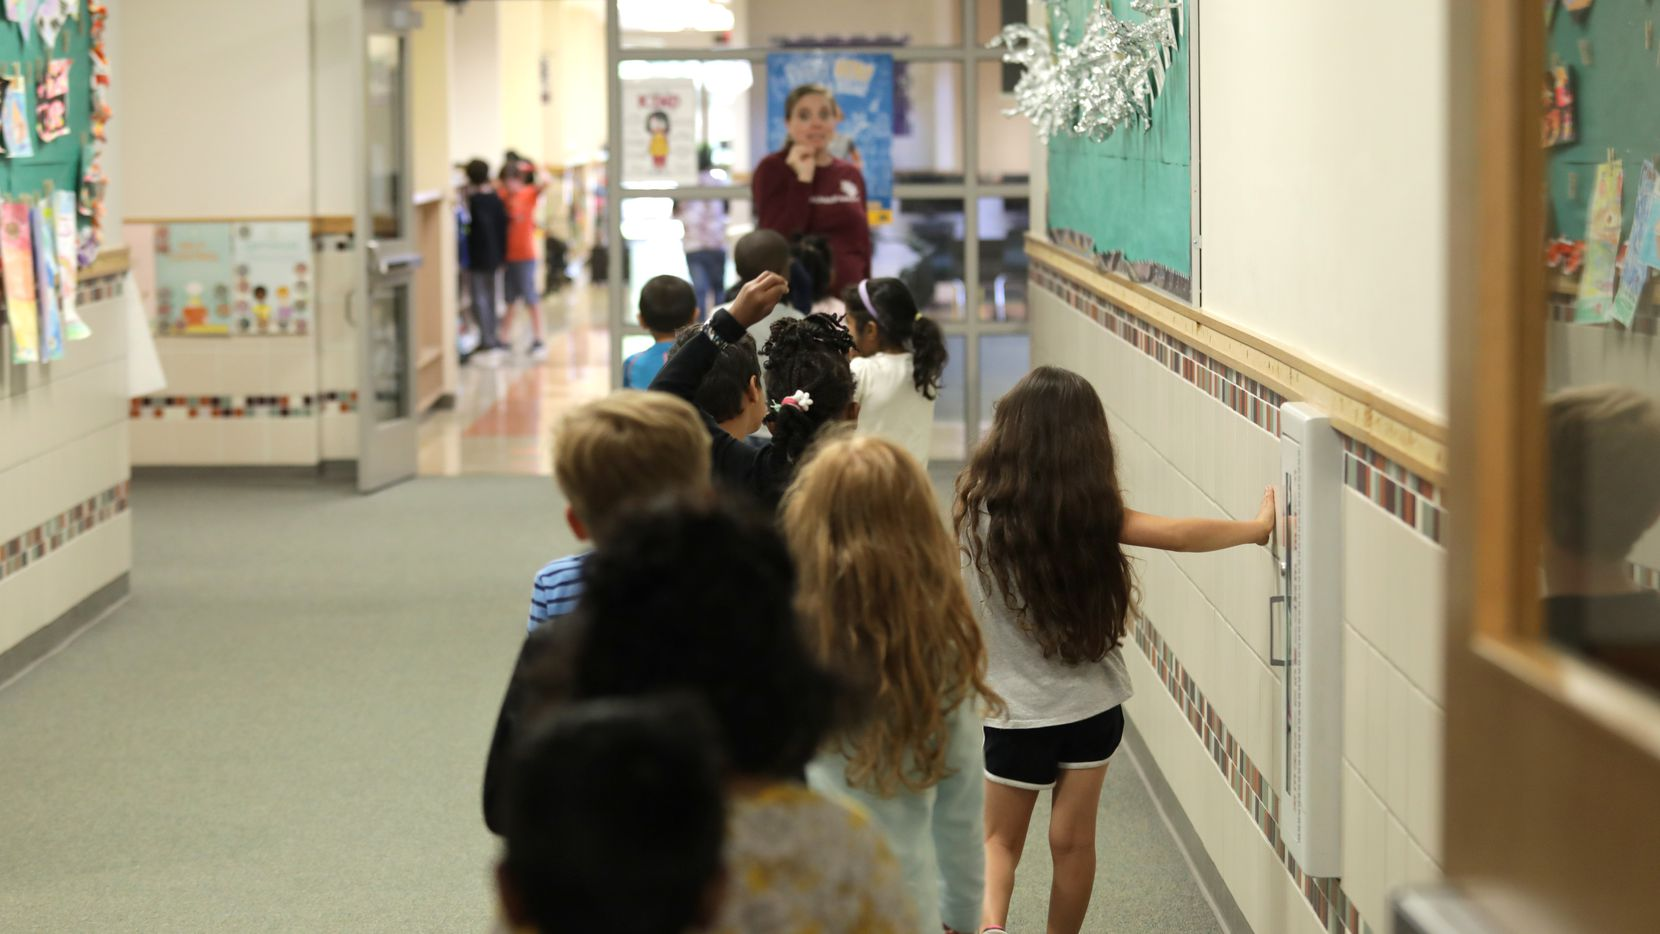 Students walked to class at Isbell Elementary School in Frisco during the 2019 spring semester.